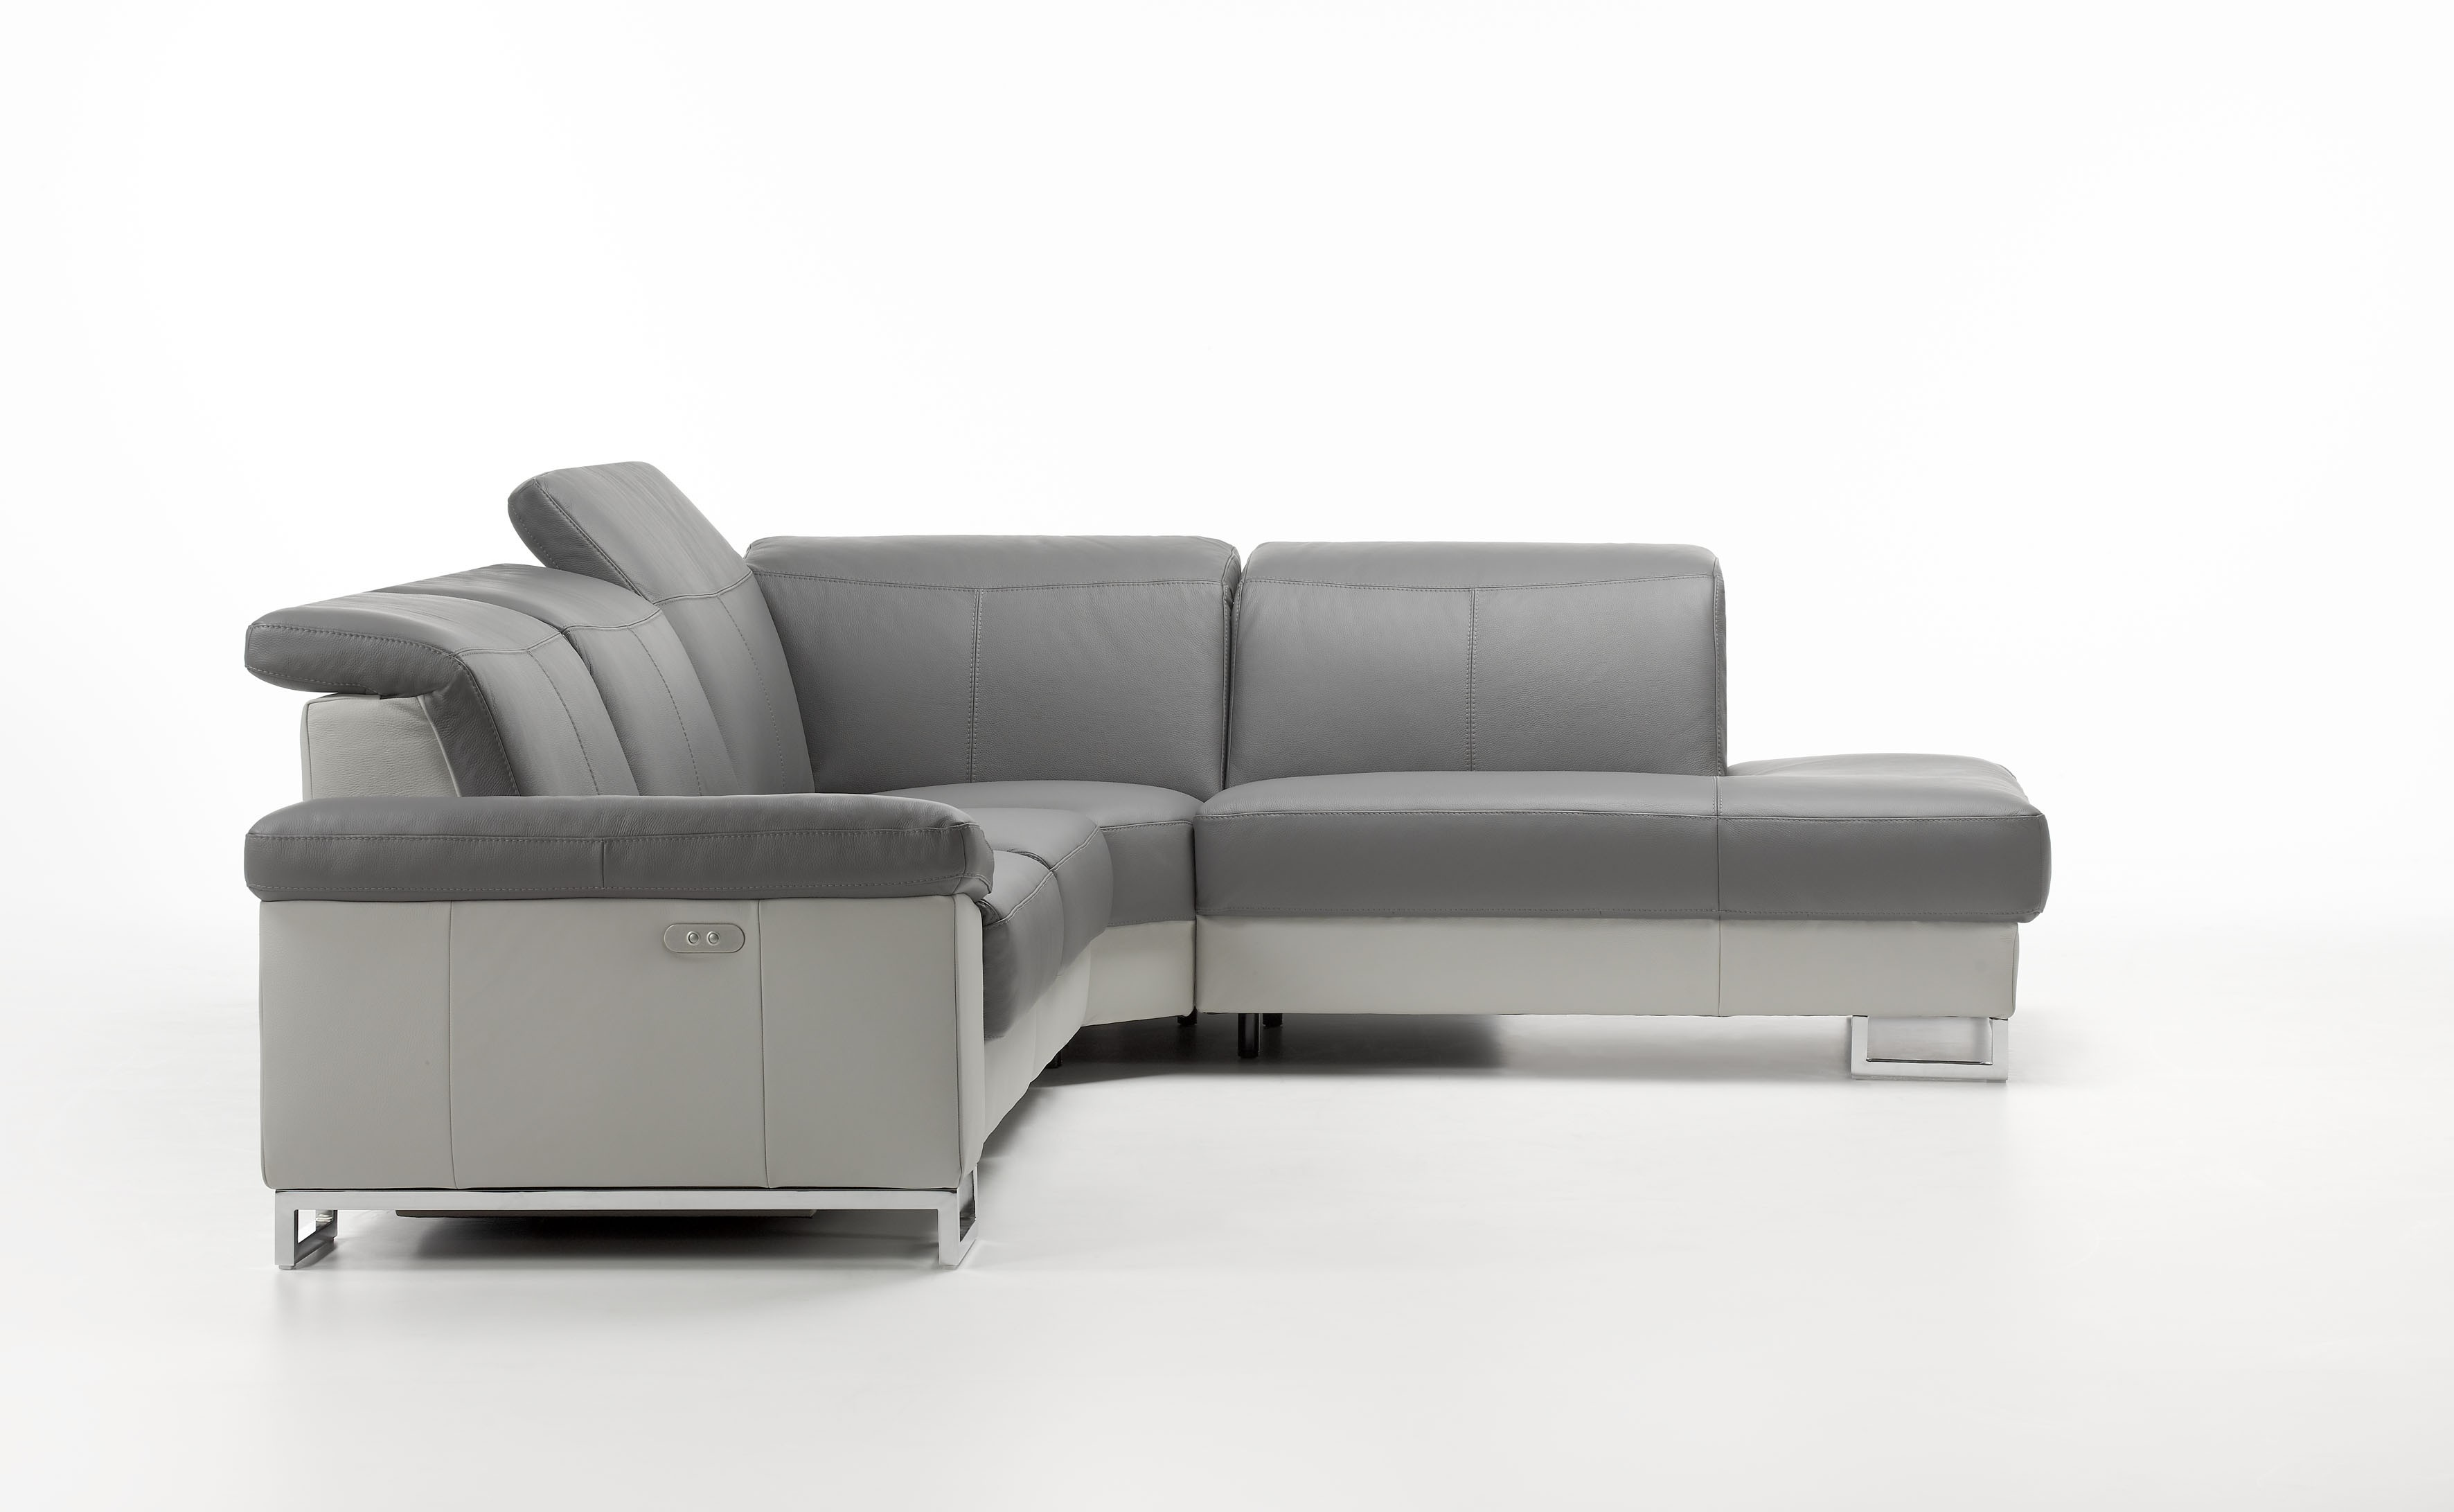 Chaise Aladin Deimos Leather Sectional By Rom Belgium At Nova Interiors